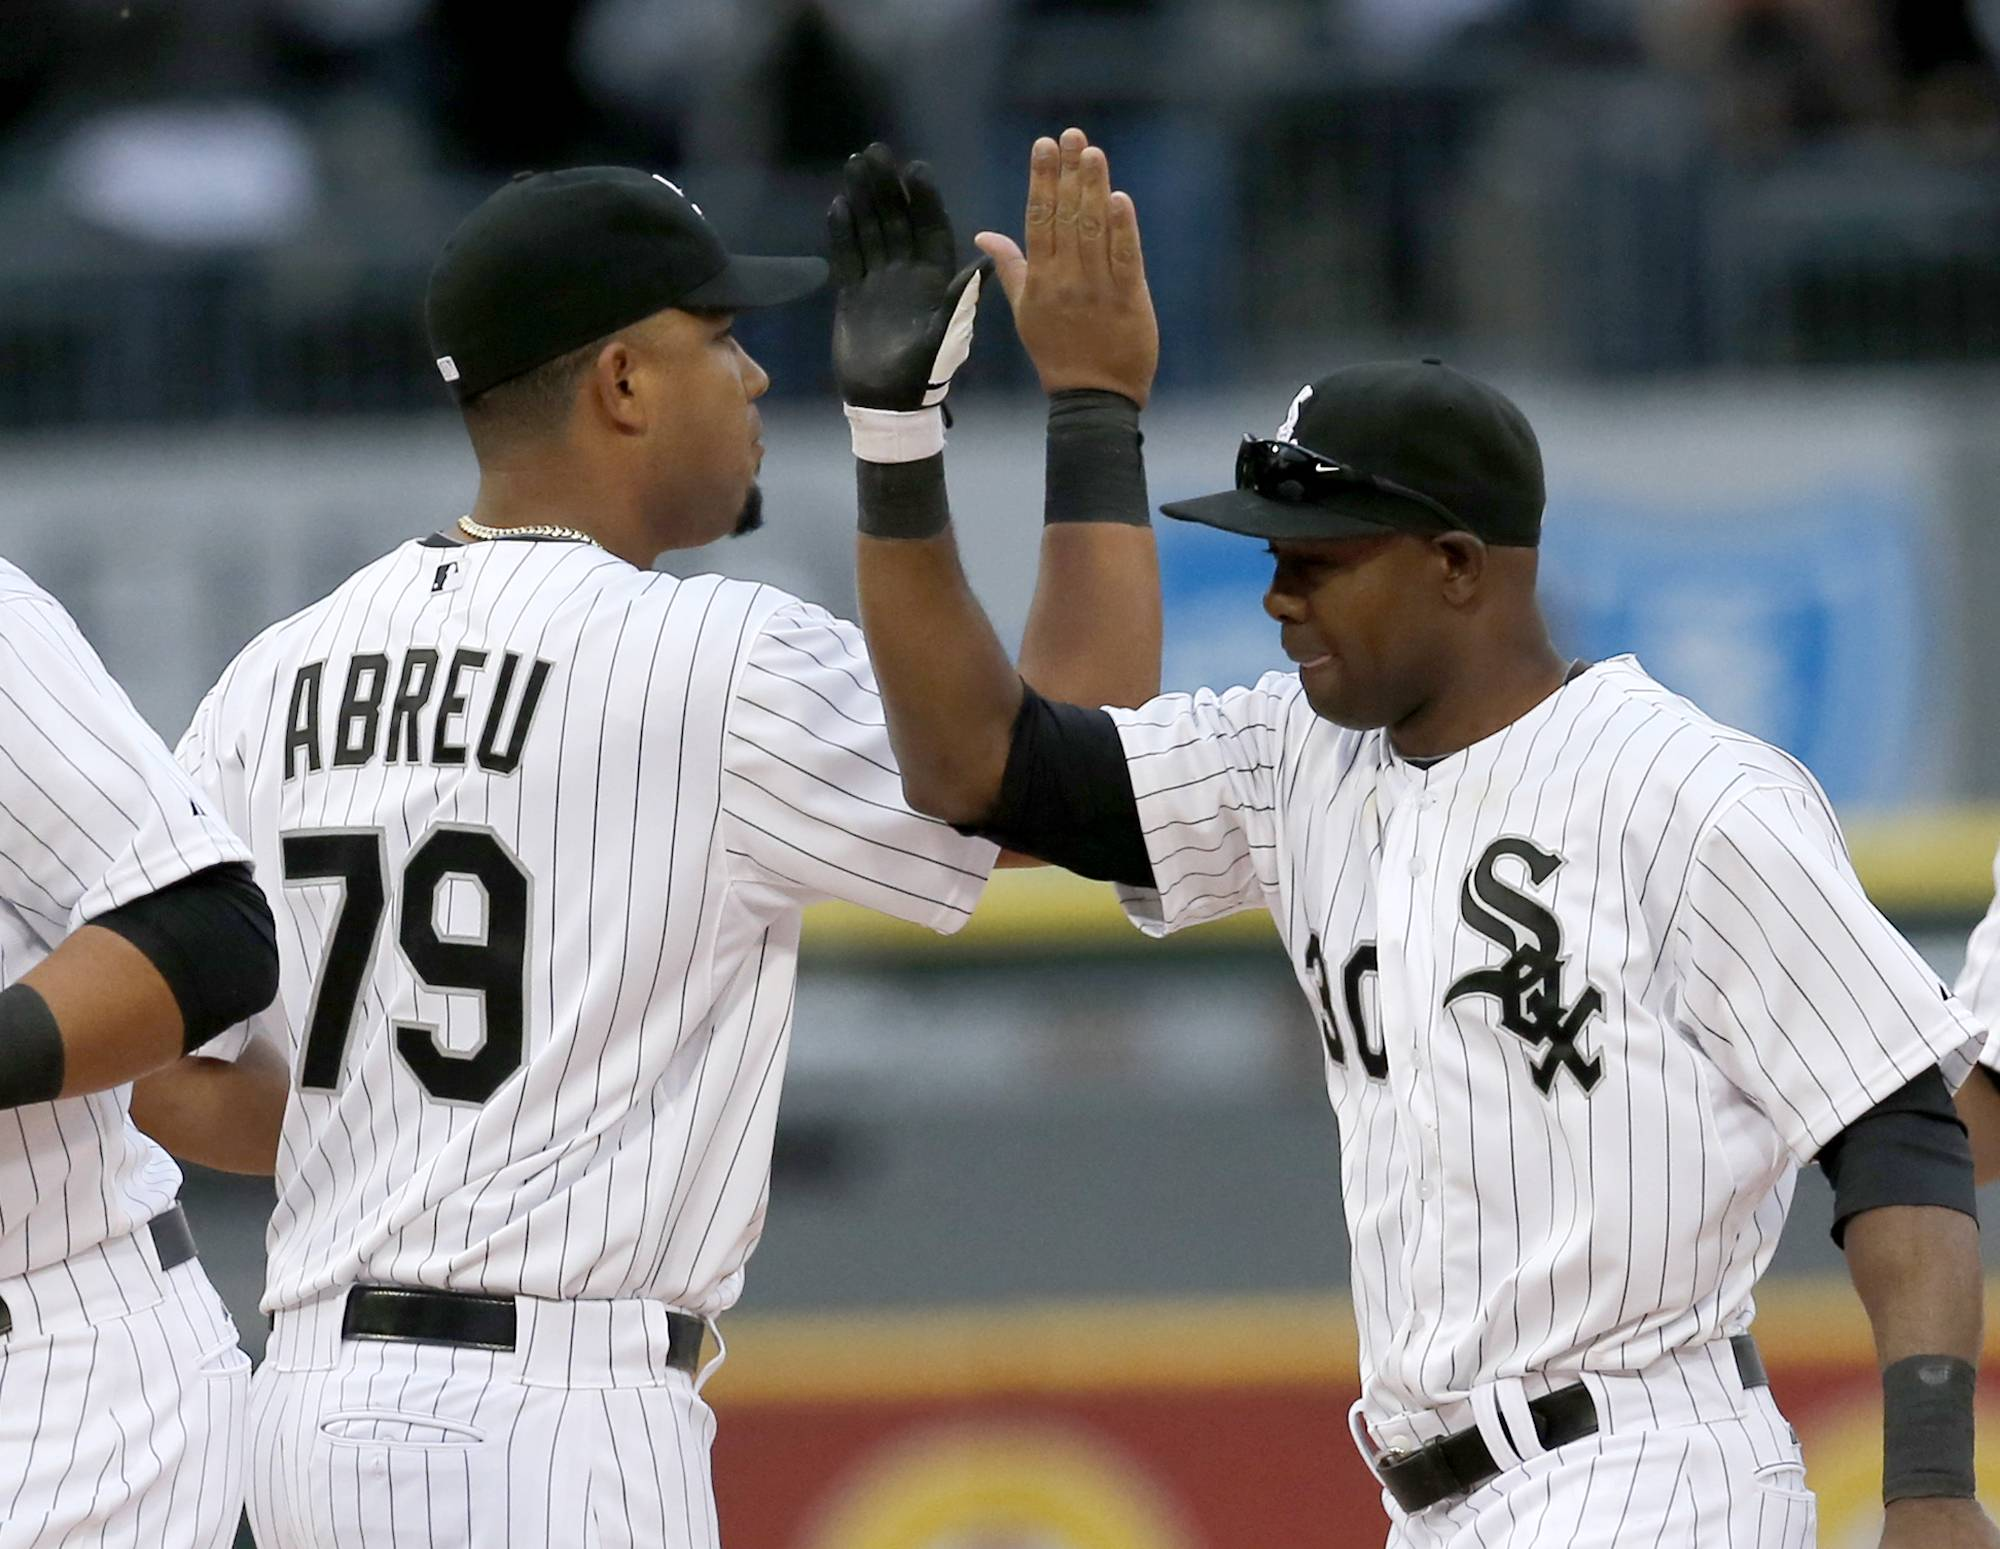 Jose Abreu and Alejandro De Aza celebrate a 5-3 win over the Minnesota Twins on Opening Day in Chicago.